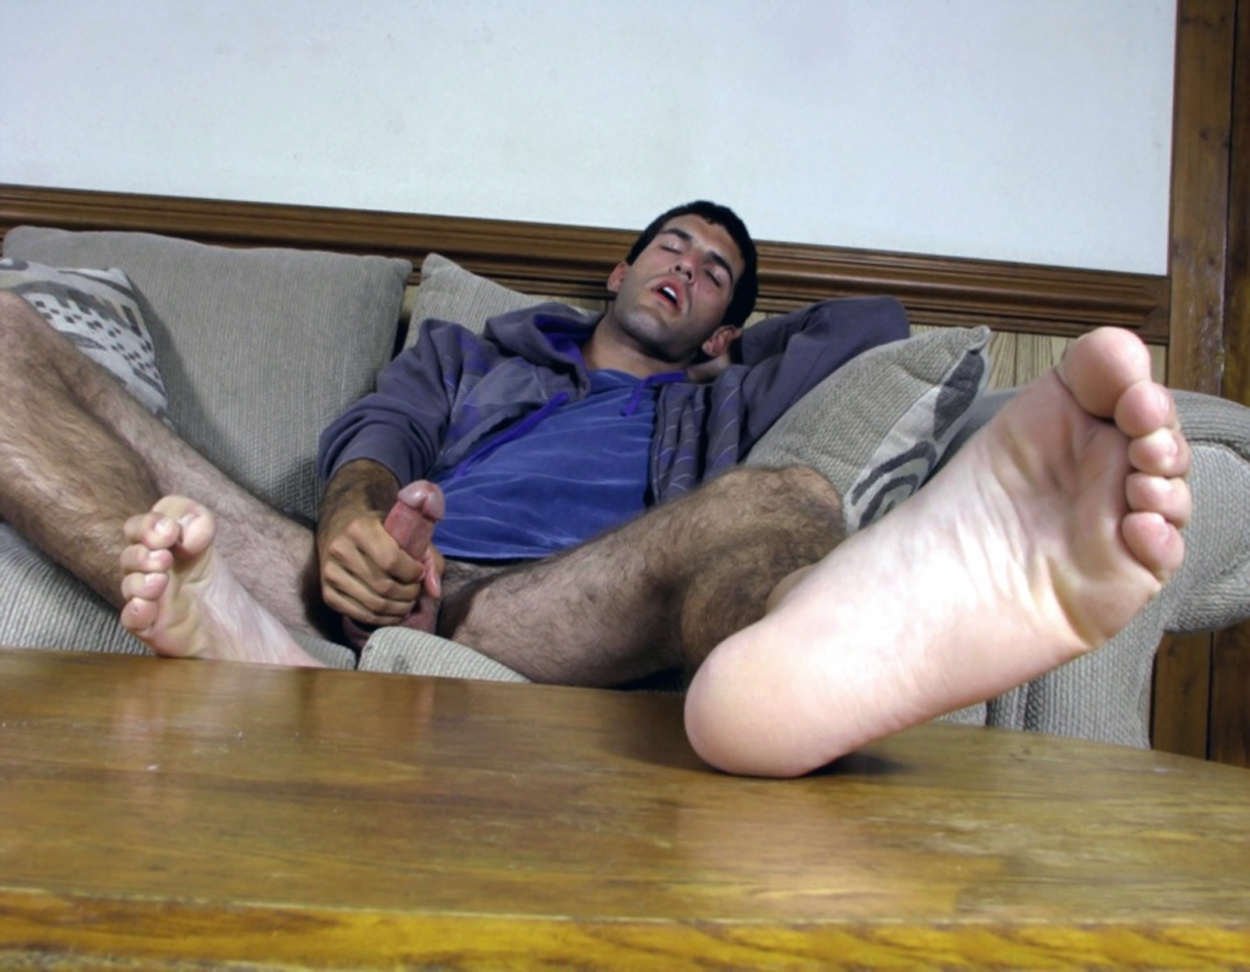 A guy sucking another guys dick movies and 2